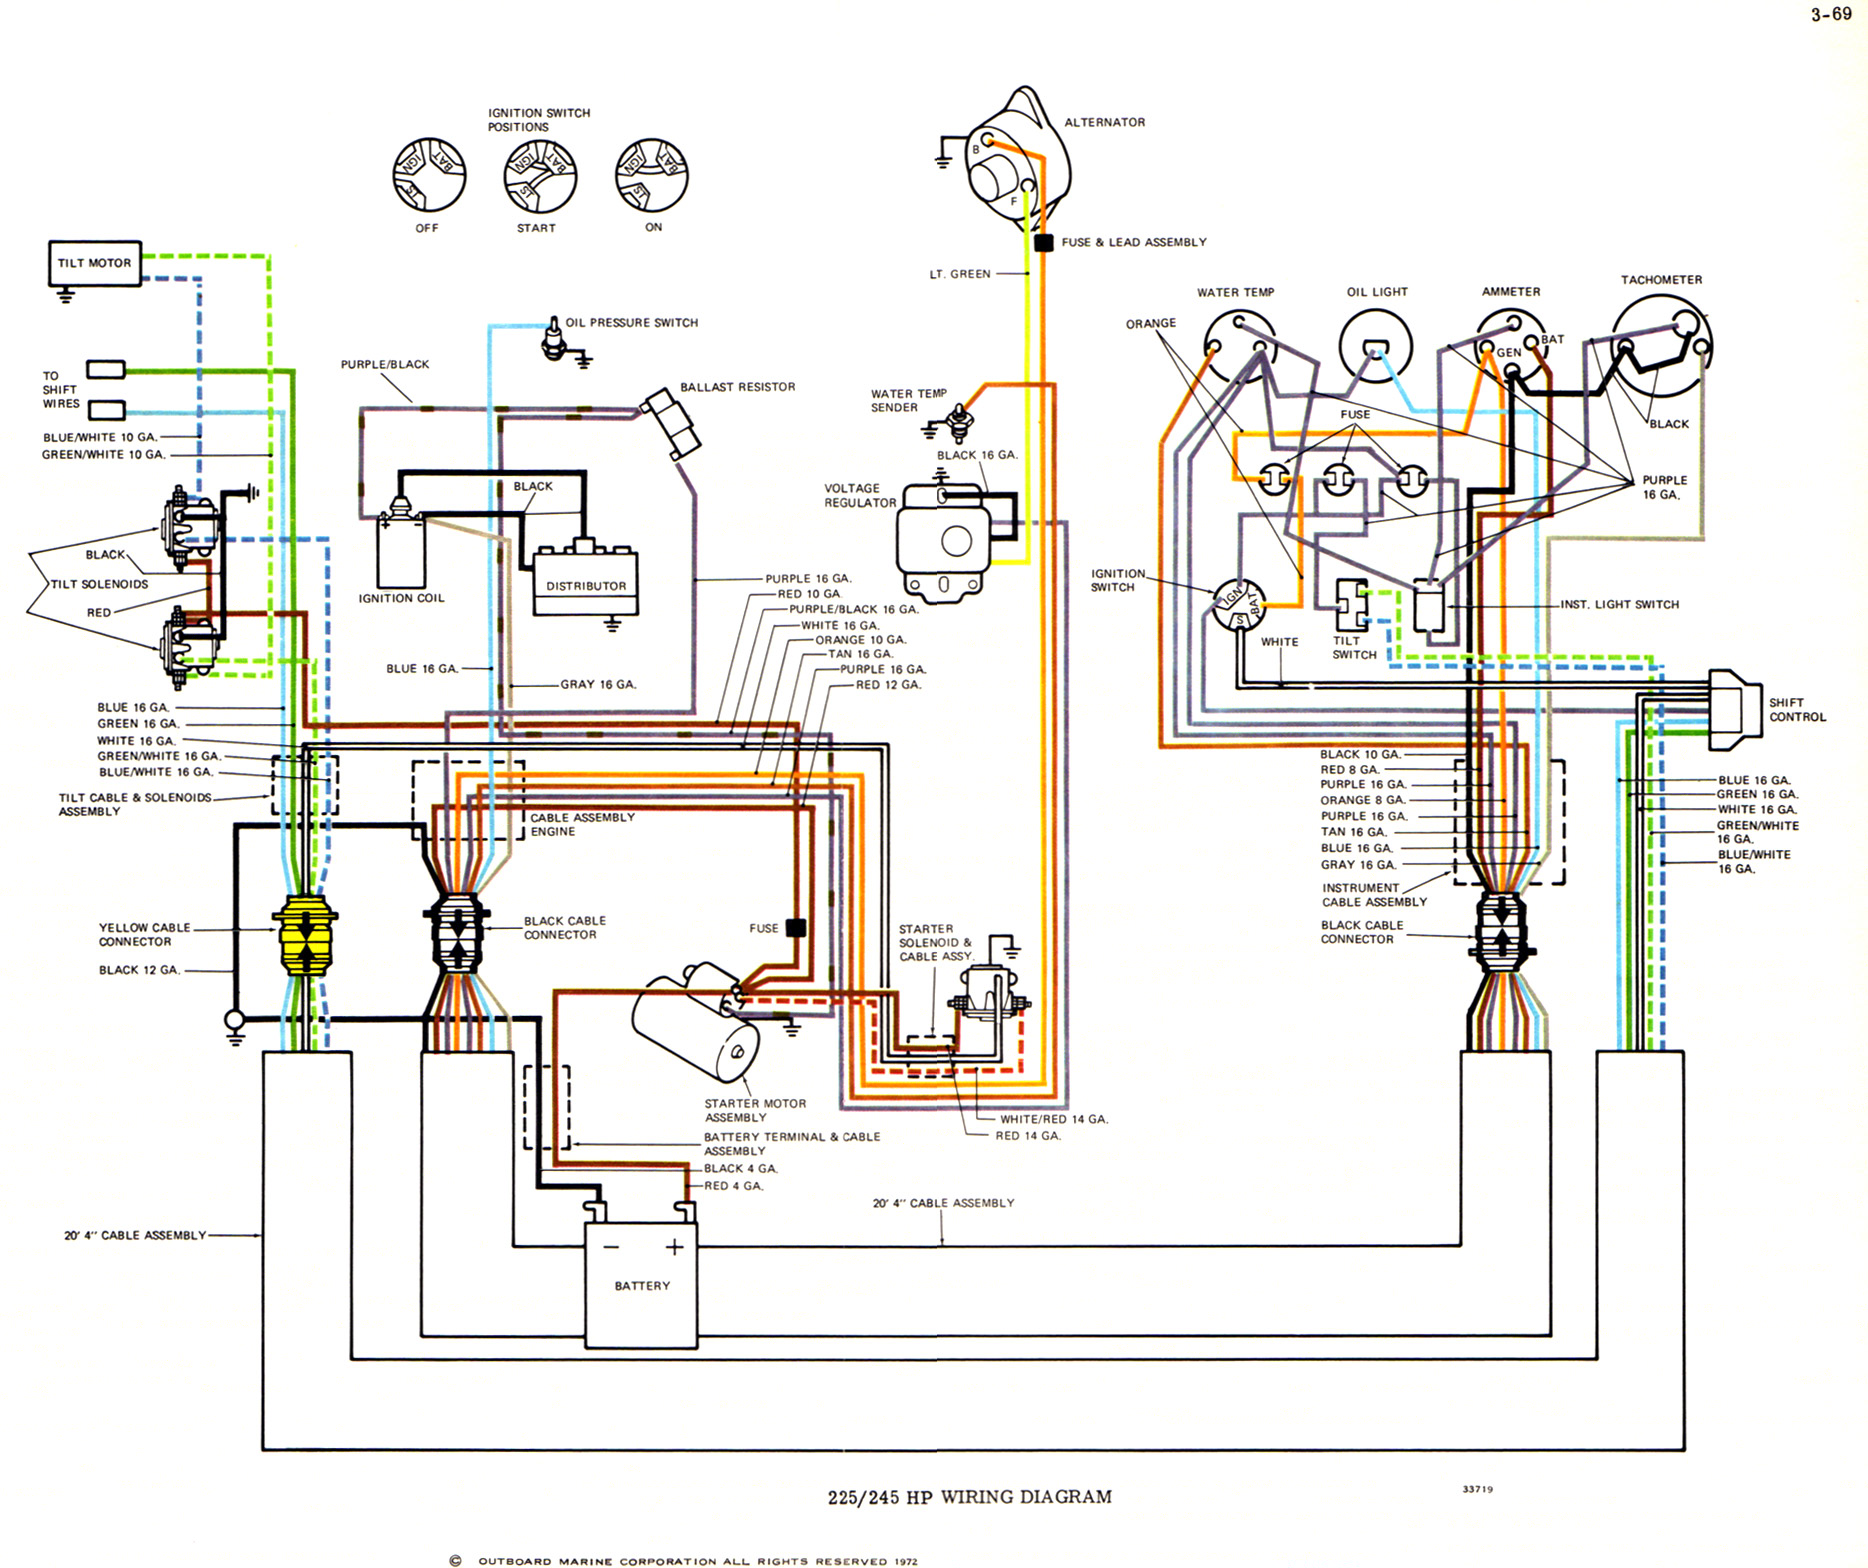 73_OMC_V8_all_big marine tachometer wiring diagram sun tachometer wiring diagram Yamaha Outboard Wiring Schematic at edmiracle.co